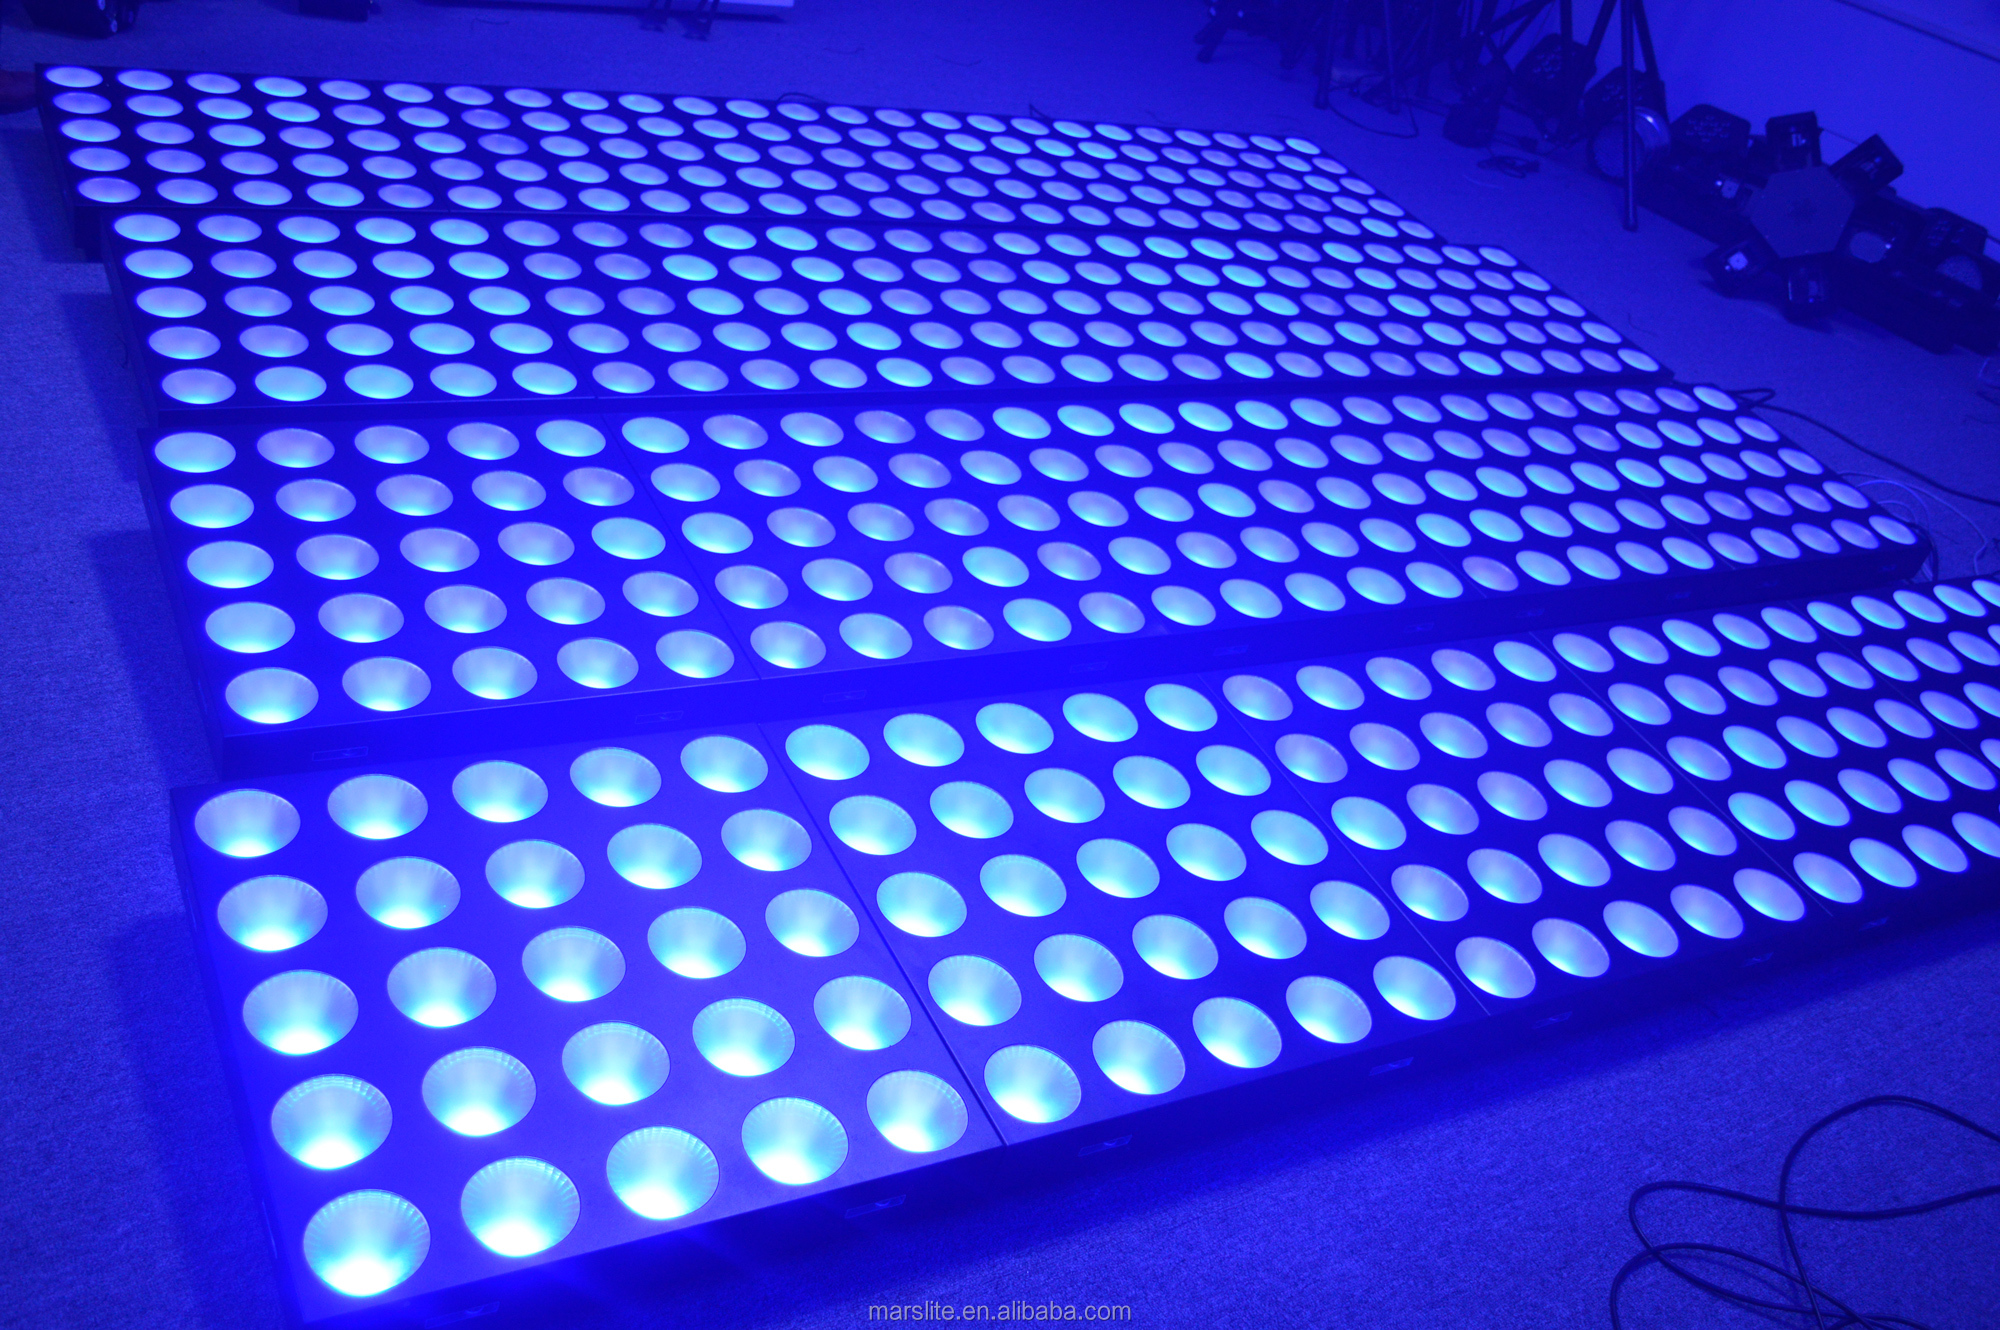 Commercial Lighting Stage Lighting Effect Professional Dmx512 Control 5x5 Dmx Led Audience Blinder Matrix Panel Beam 25x10w Rgbw 4 In 1 Led Matrix Blinder Light A Complete Range Of Specifications